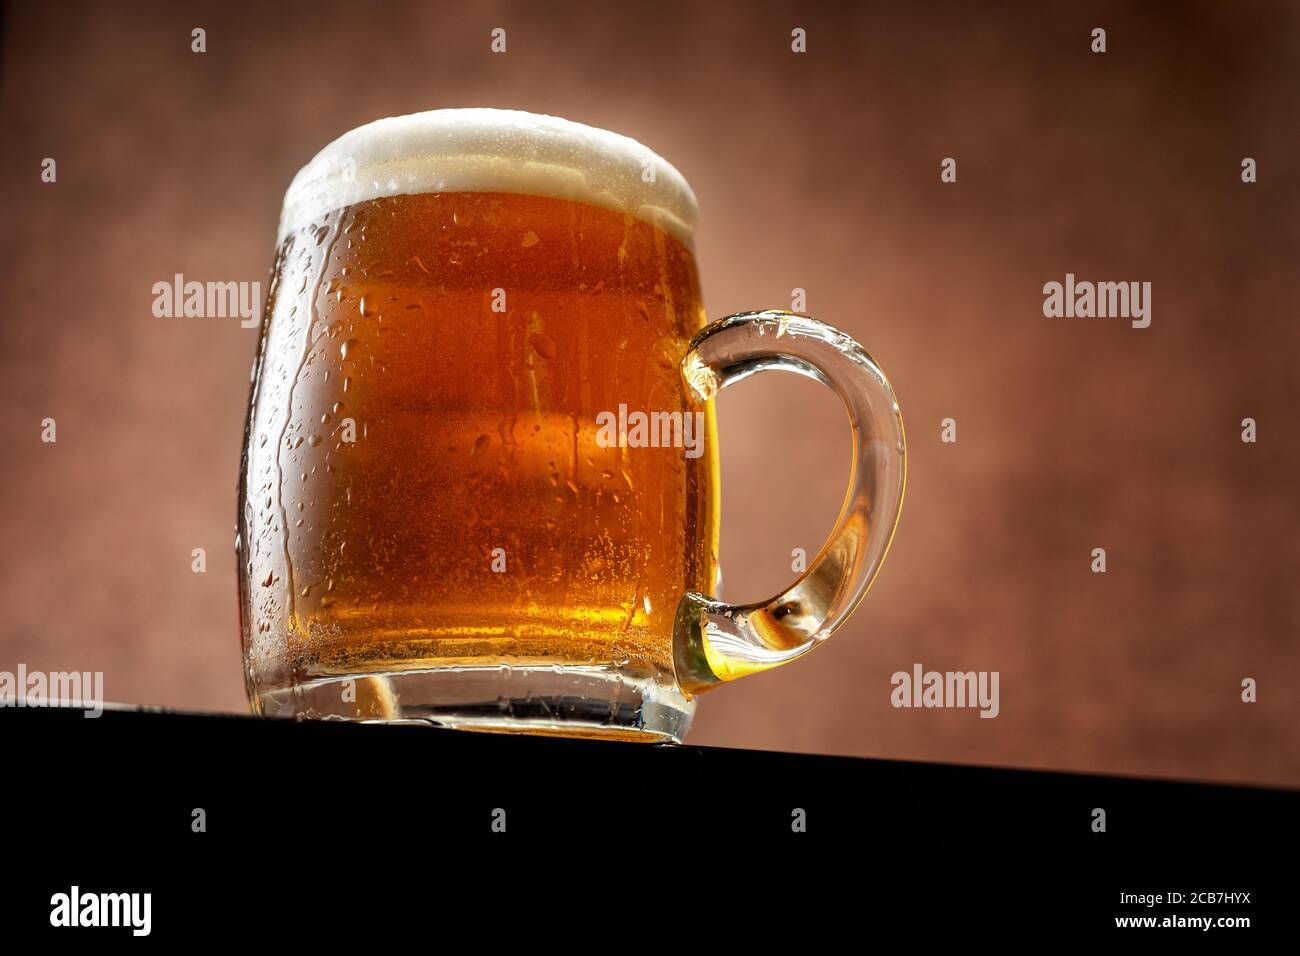 Mug of beer with foam standing against brown background Stock Photo